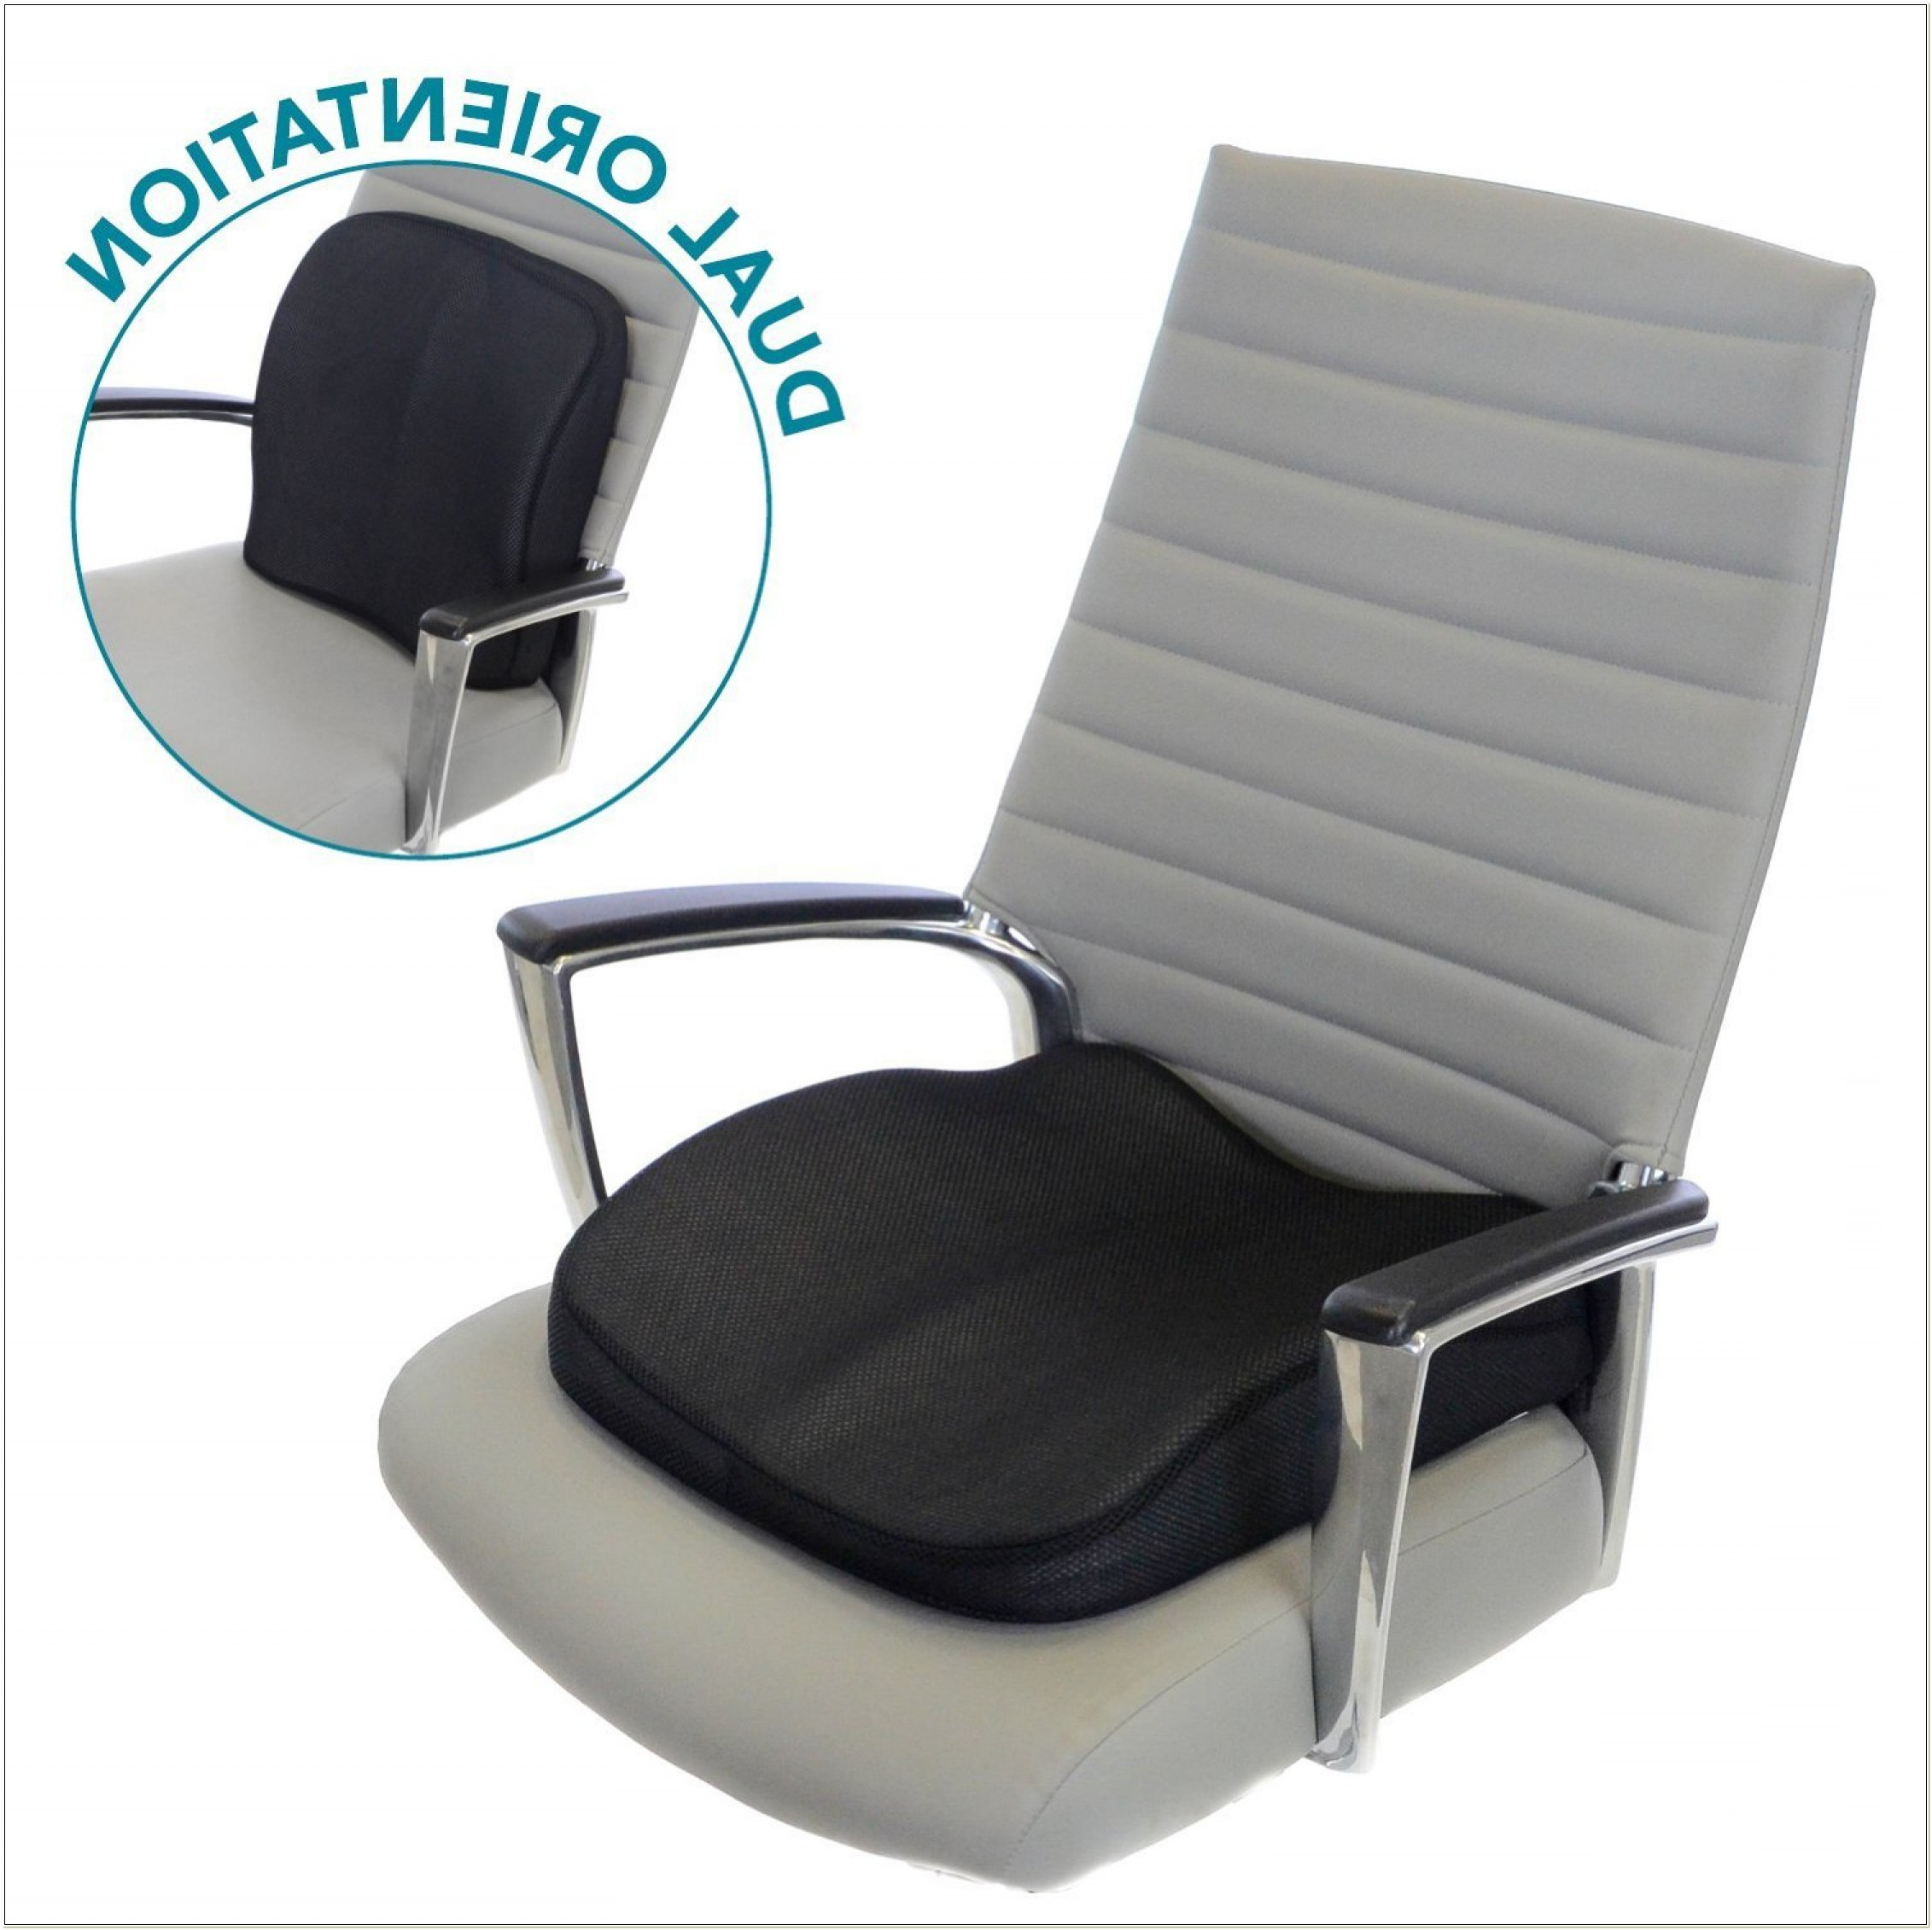 Wedge Cushion For Office Chair